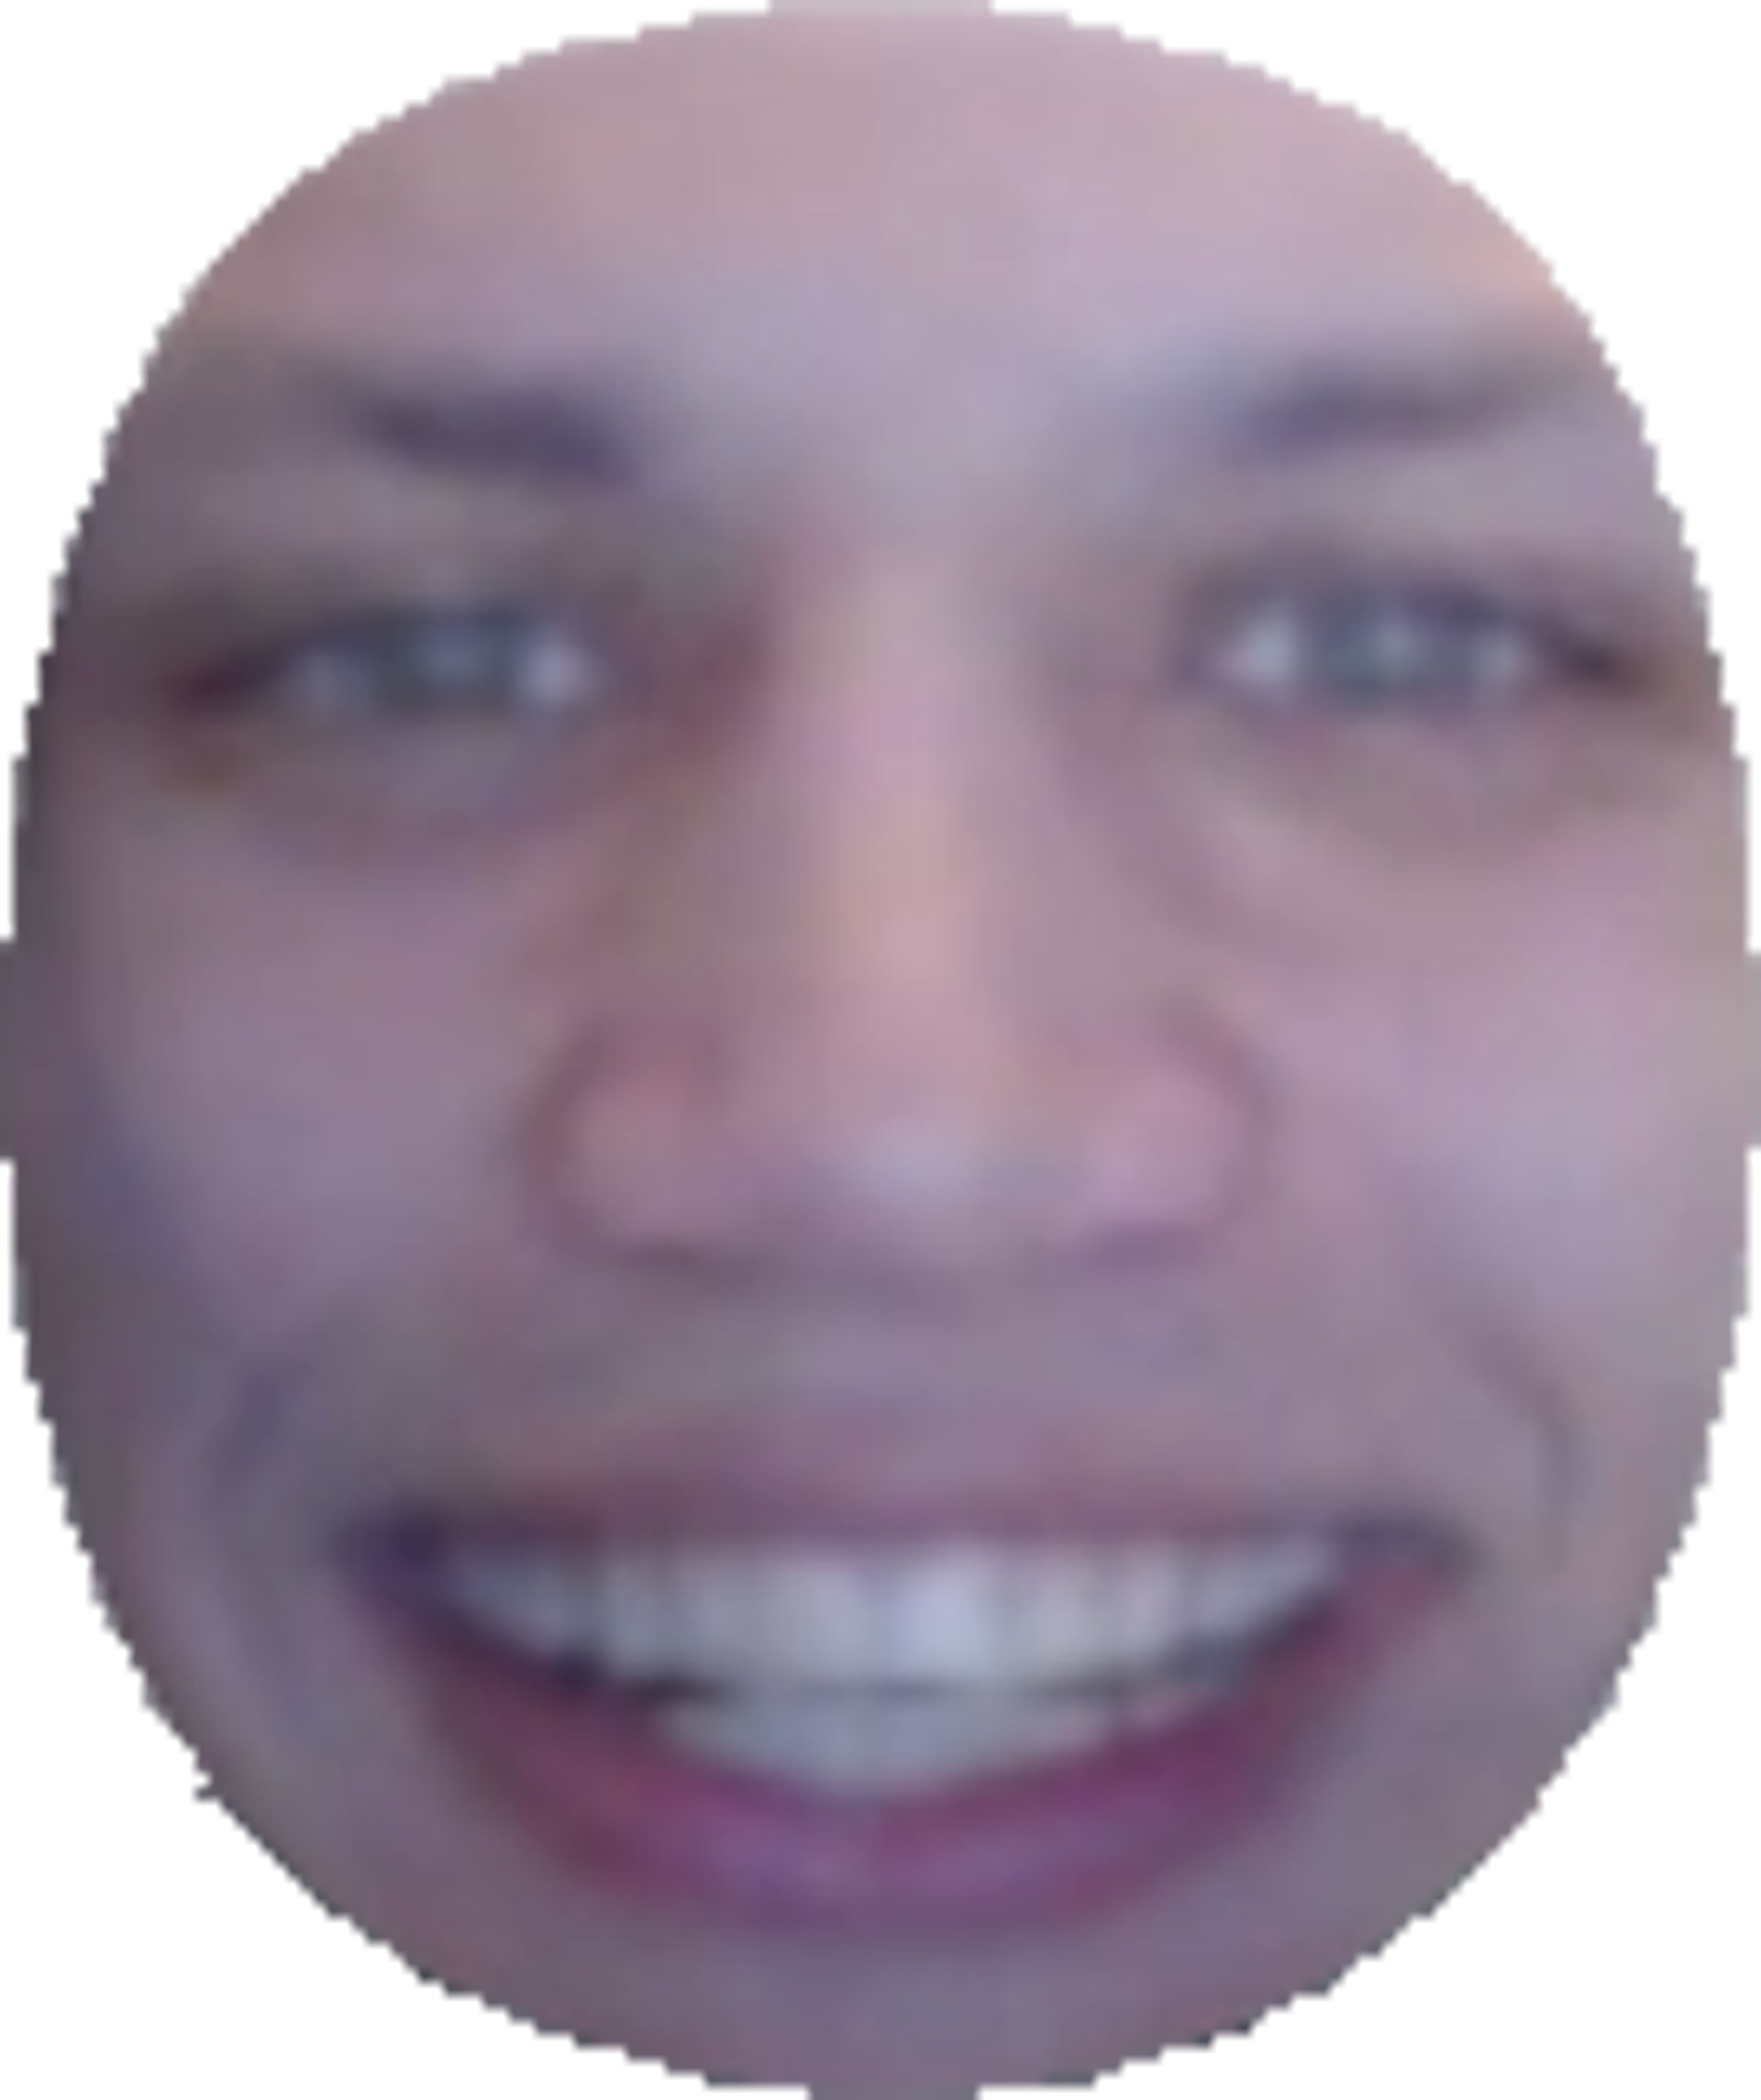 Tyler head imgur tylerhead. Transparent emotes 4head clipart black and white stock